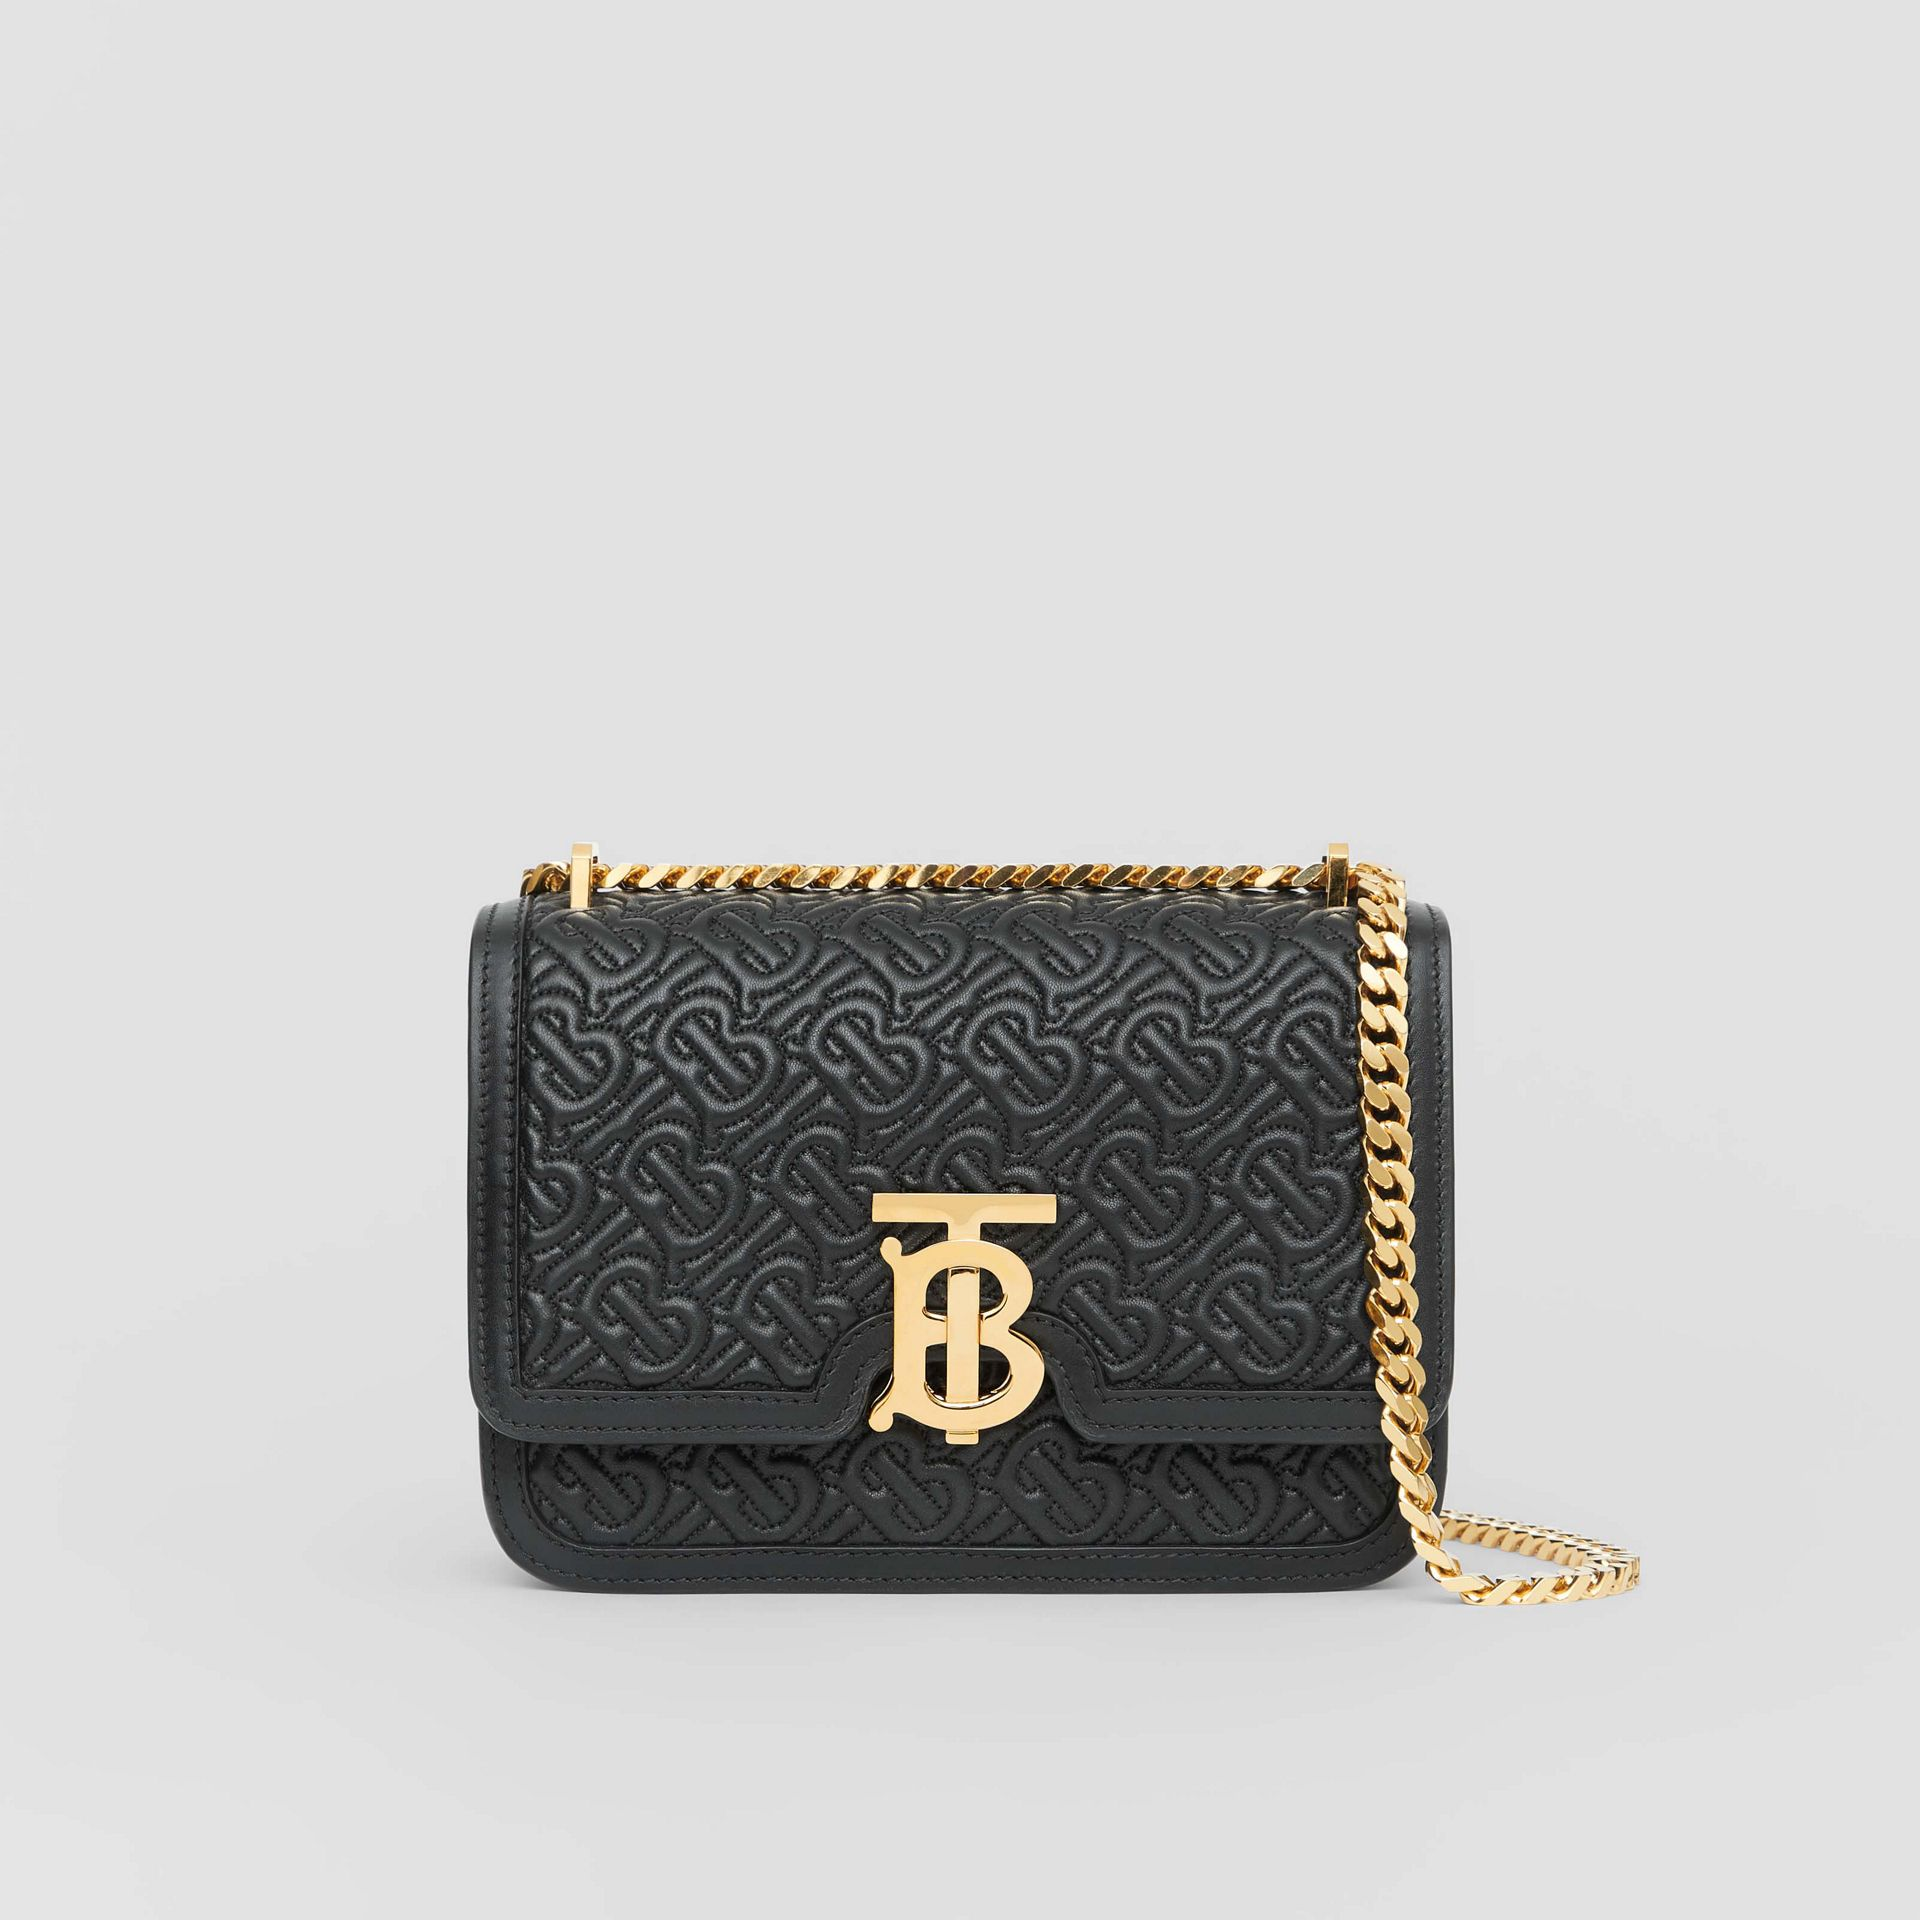 Small Quilted Monogram Lambskin TB Bag in Black - Women | Burberry - gallery image 0